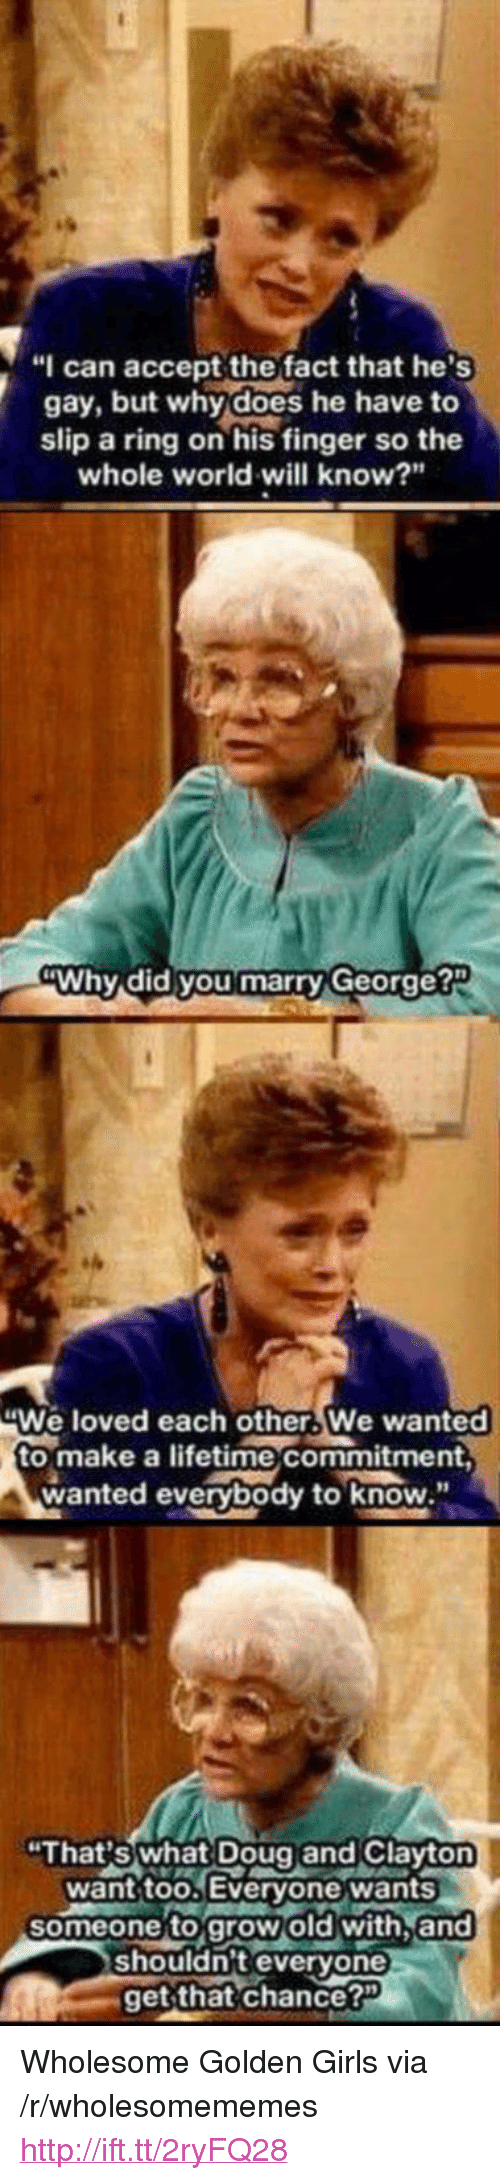 "golden girls: ""I can accept the fact that he's  gay, but why does he have to  slip a ring on his finger so the  whole world will know?""  Why did you marry George?  We loved each other.We wanted  to make a lifetime commitment,  wanted everybody to know  ""That's what Doug and Clayt  want too Everyone wants  someone to grow old with.and  shouldn't everyone  get that chance?"" <p>Wholesome Golden Girls via /r/wholesomememes <a href=""http://ift.tt/2ryFQ28"">http://ift.tt/2ryFQ28</a></p>"